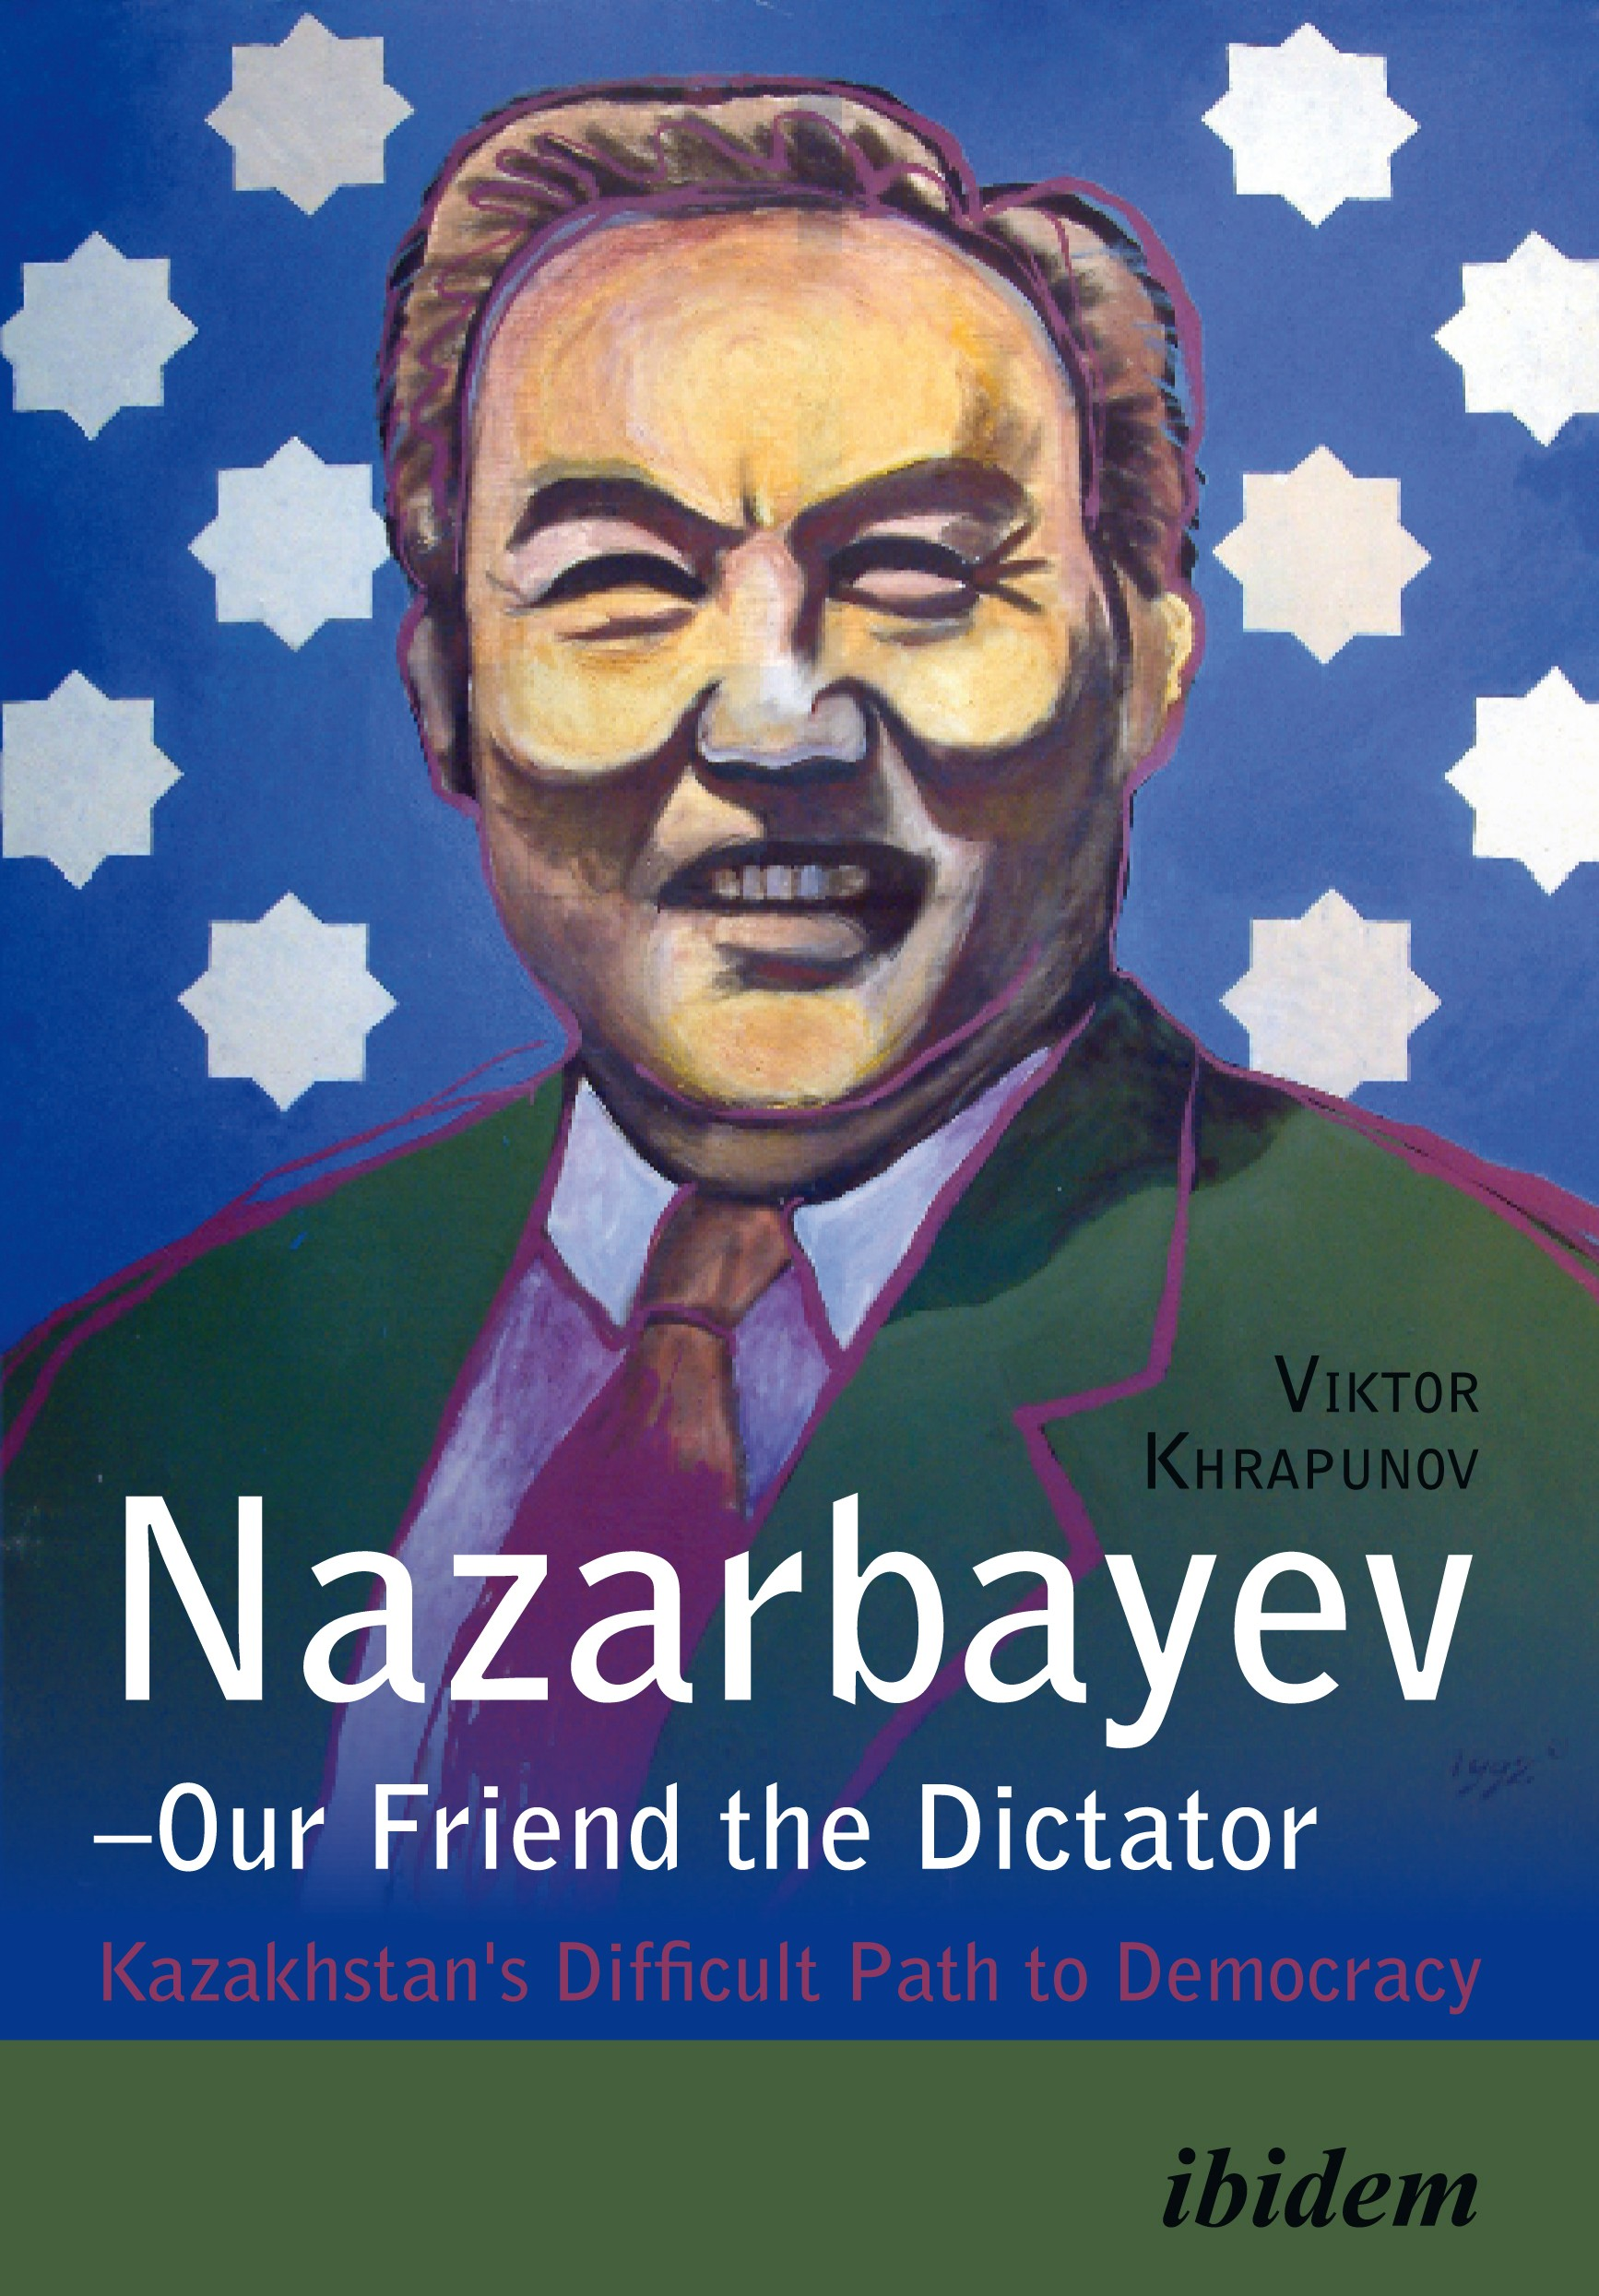 Nazarbayev – Our Friend the Dictator